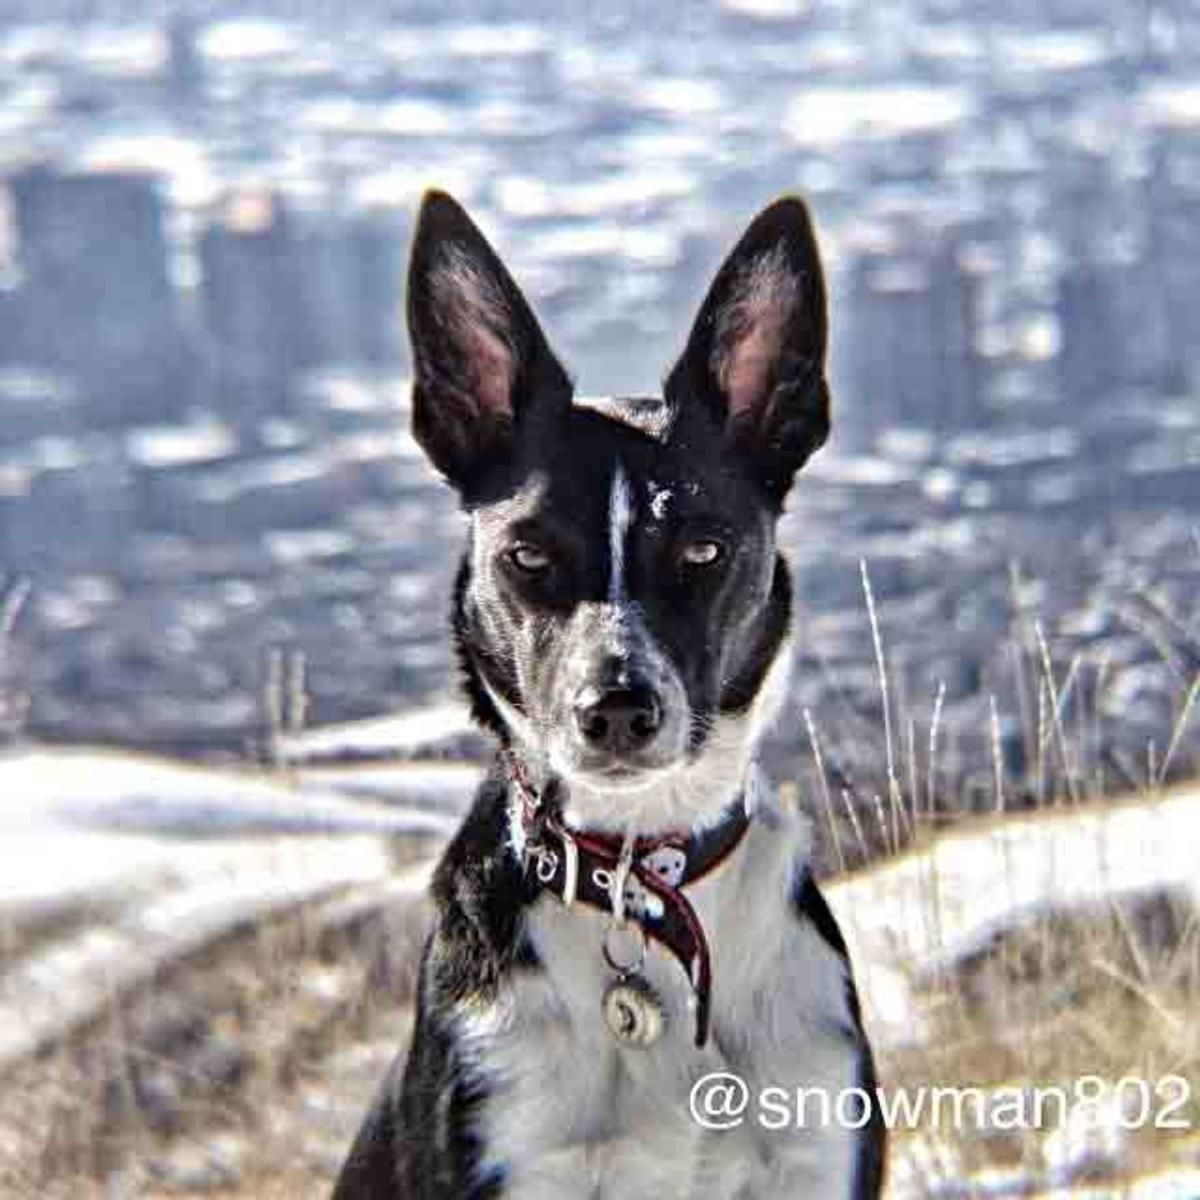 Eldoradog Put On Her Serious Border Collie Face For This Shoot In The Foothills Of Slc Utah Saltlakecity Salt Lake City Hotels Lake Lake Photography